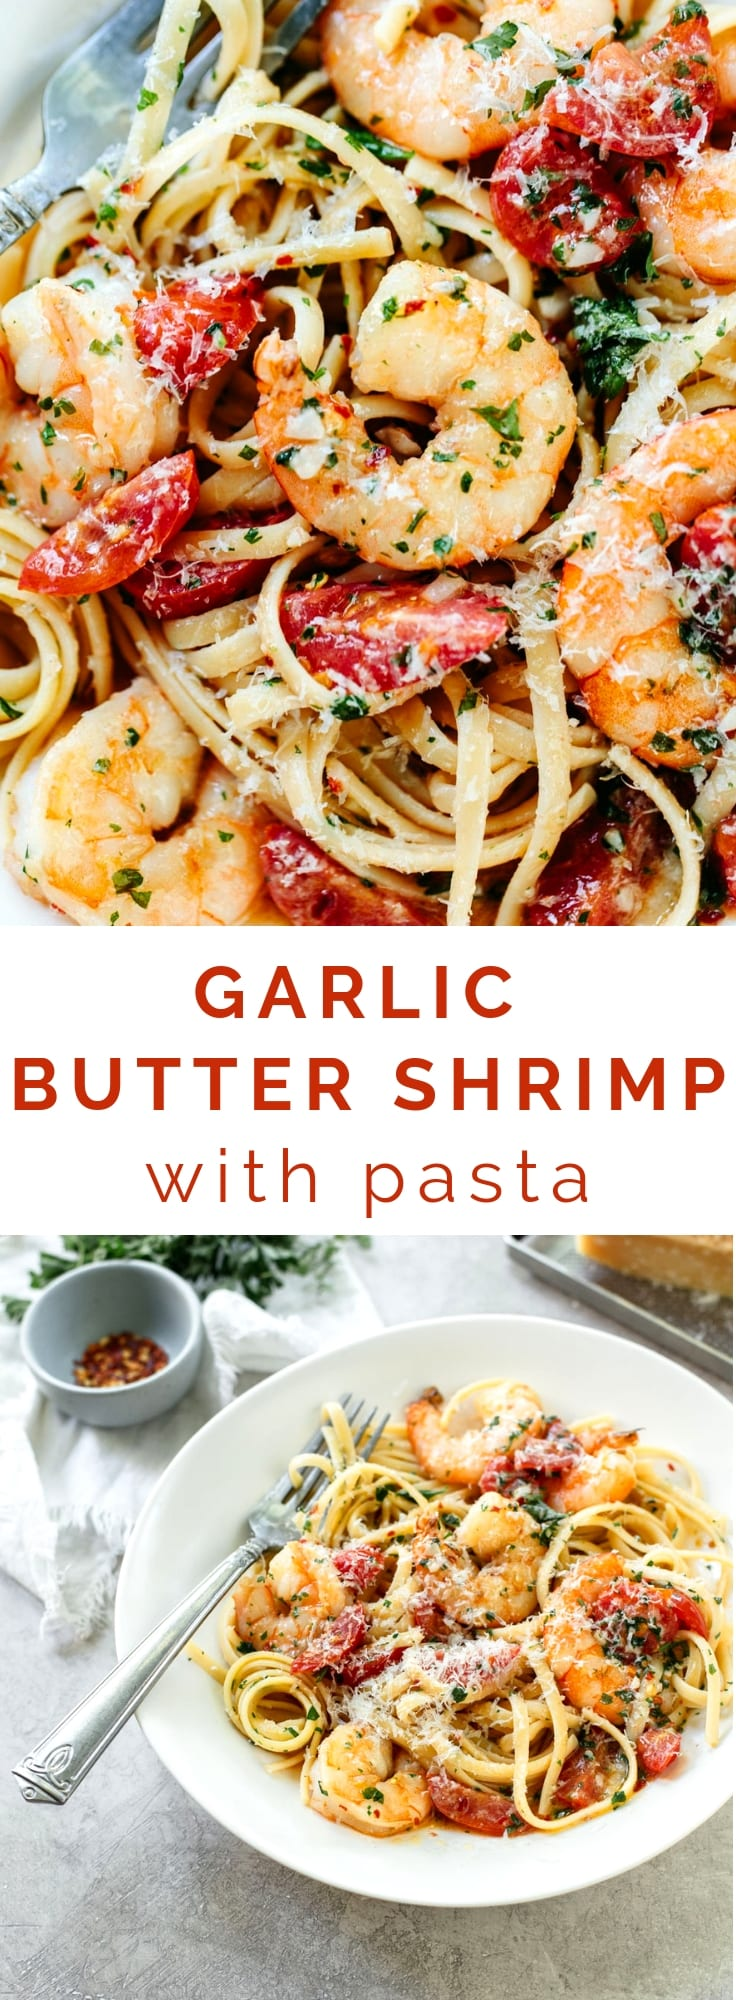 Tasty and easy 20-minute Garlic Butter Shrimp Pasta: Sauteed shrimp in a spicy garlic butter sauce with tomatoes.